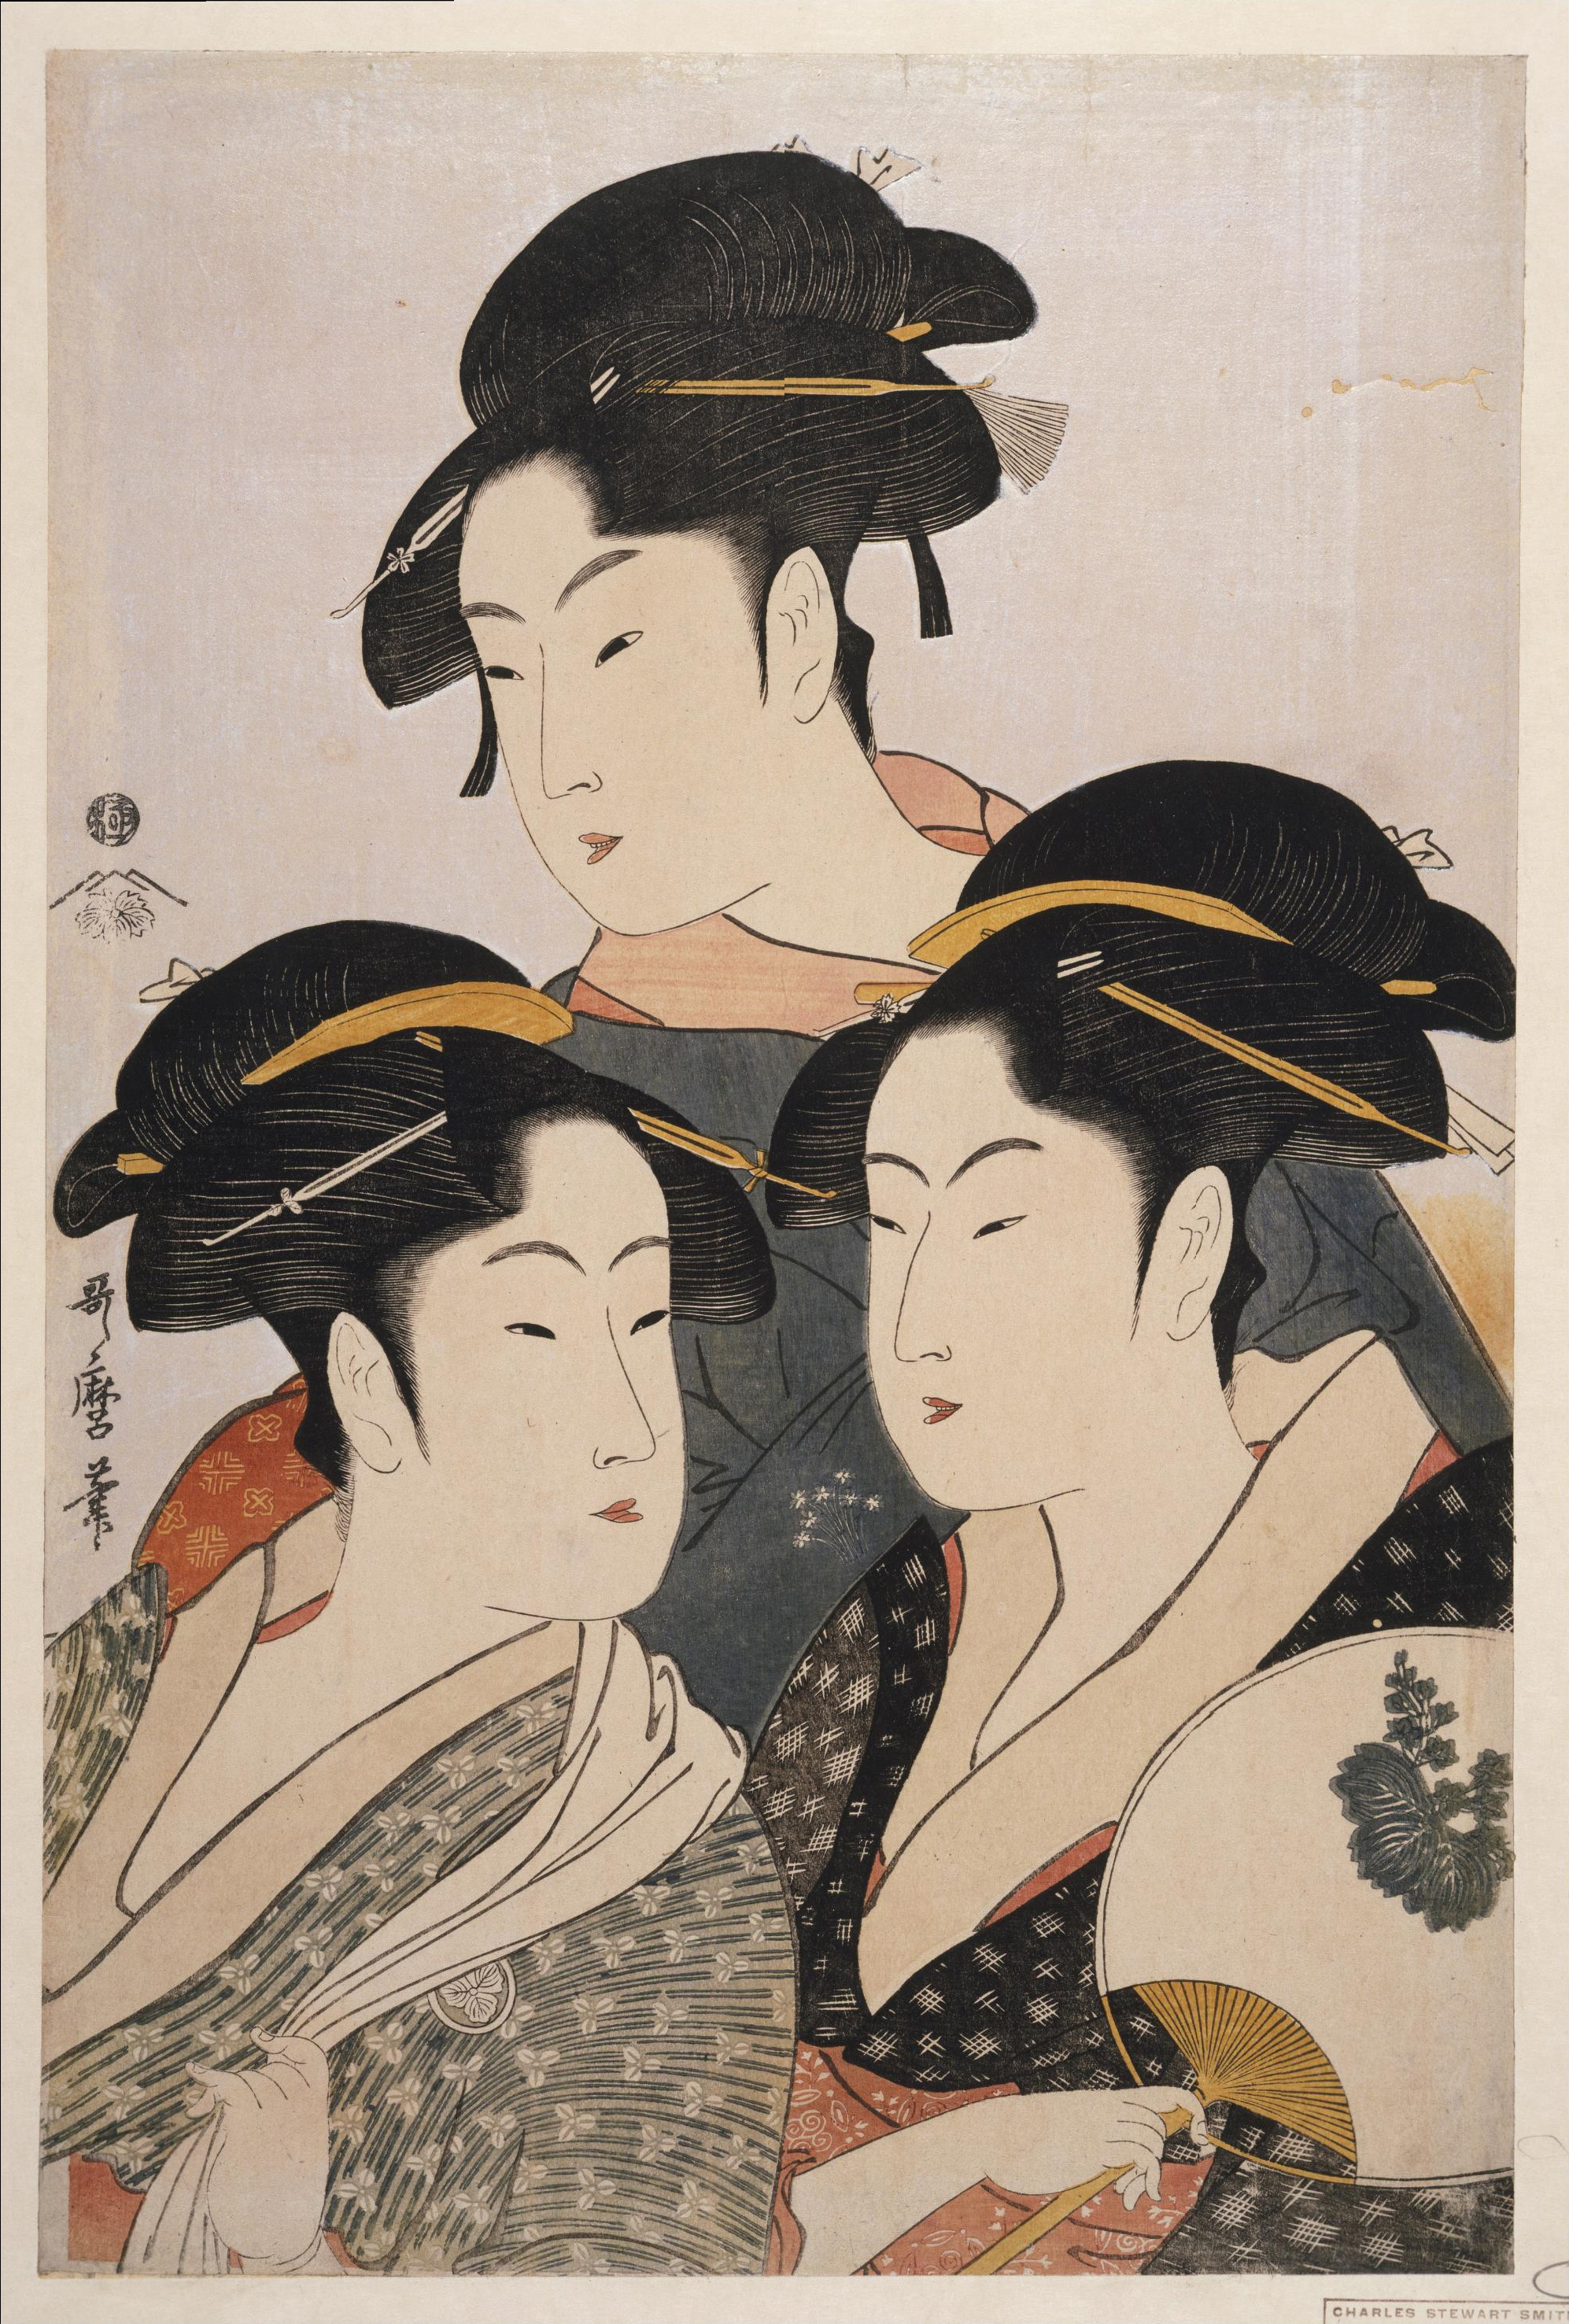 http://upload.wikimedia.org/wikipedia/commons/4/4b/Utamaro1.jpg